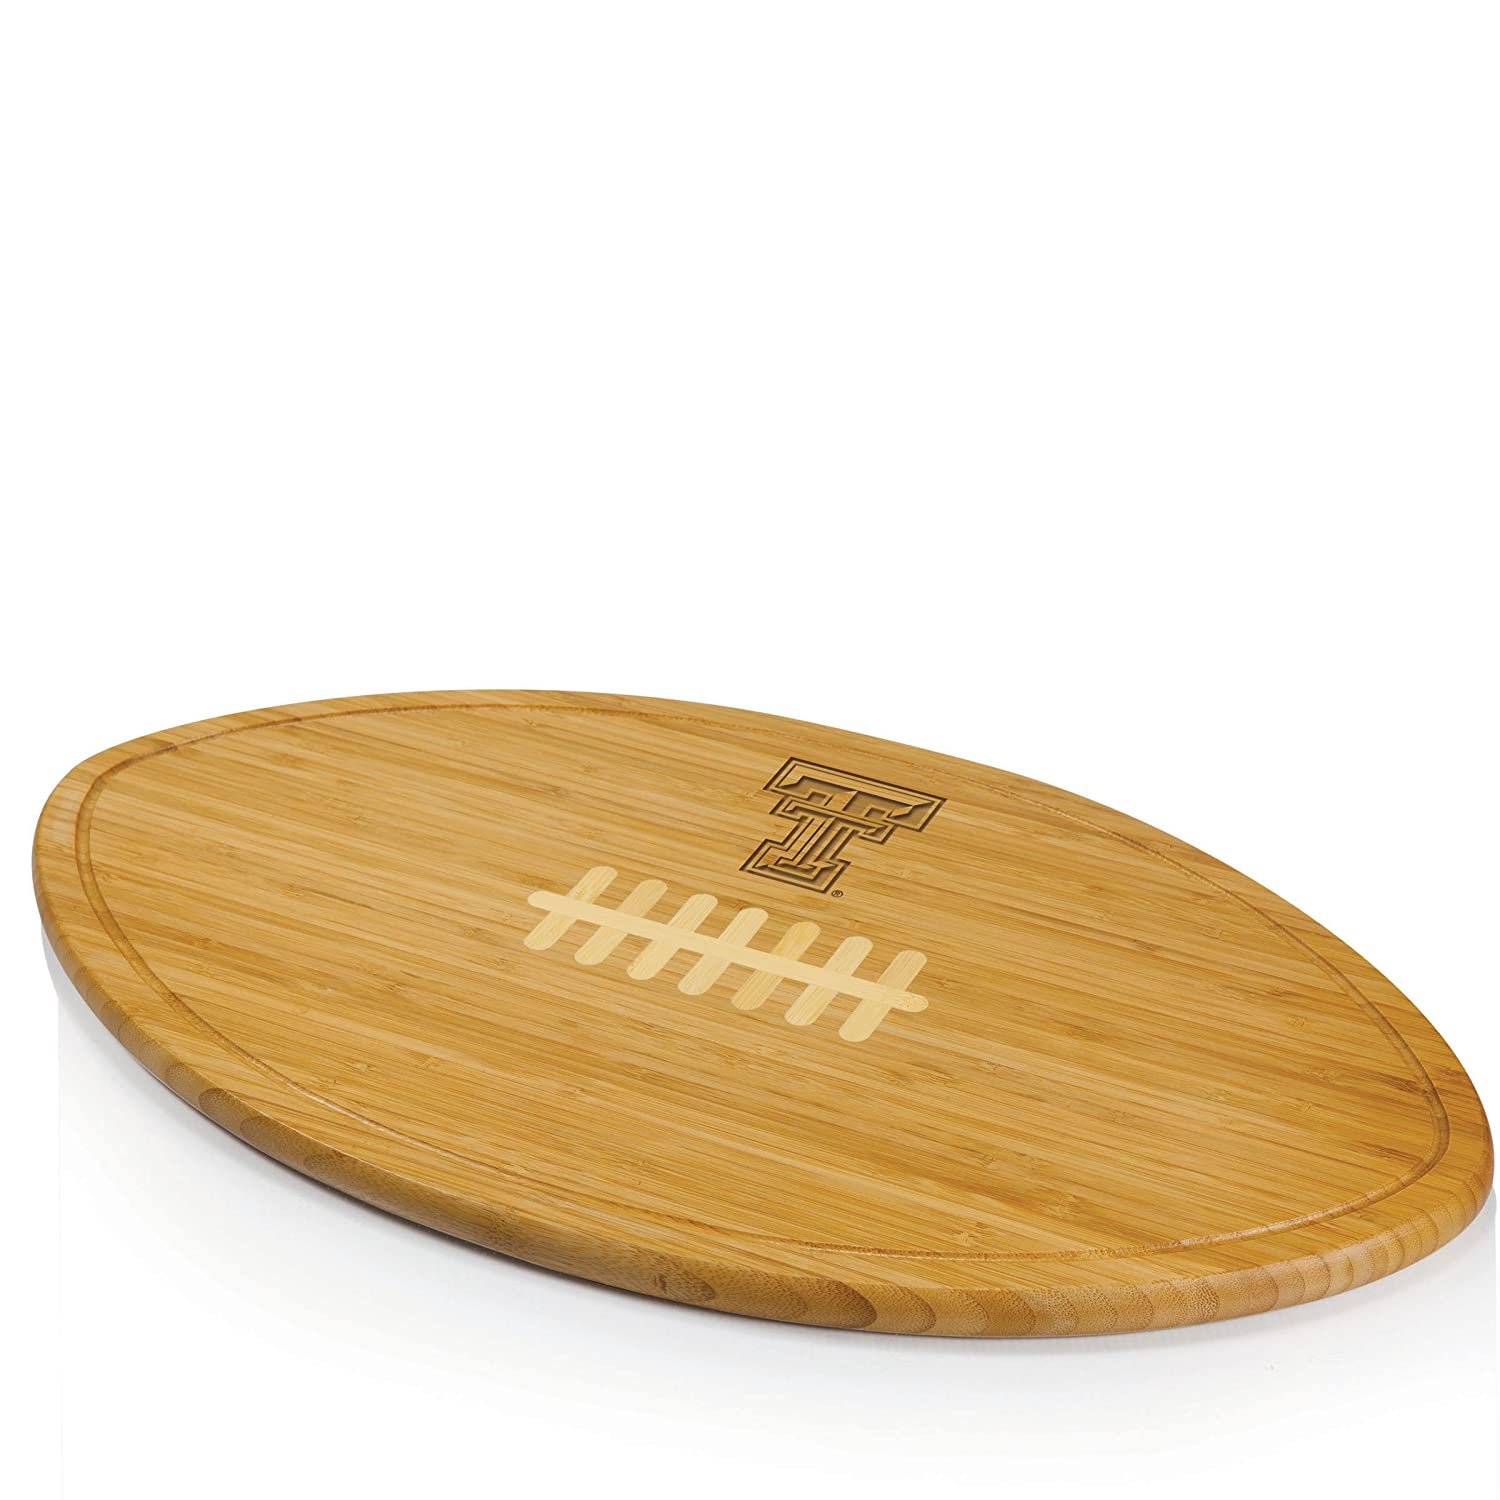 NCAA Texas Tech Red Raiders Kickoff Cheese Board   B00FBUPPEK